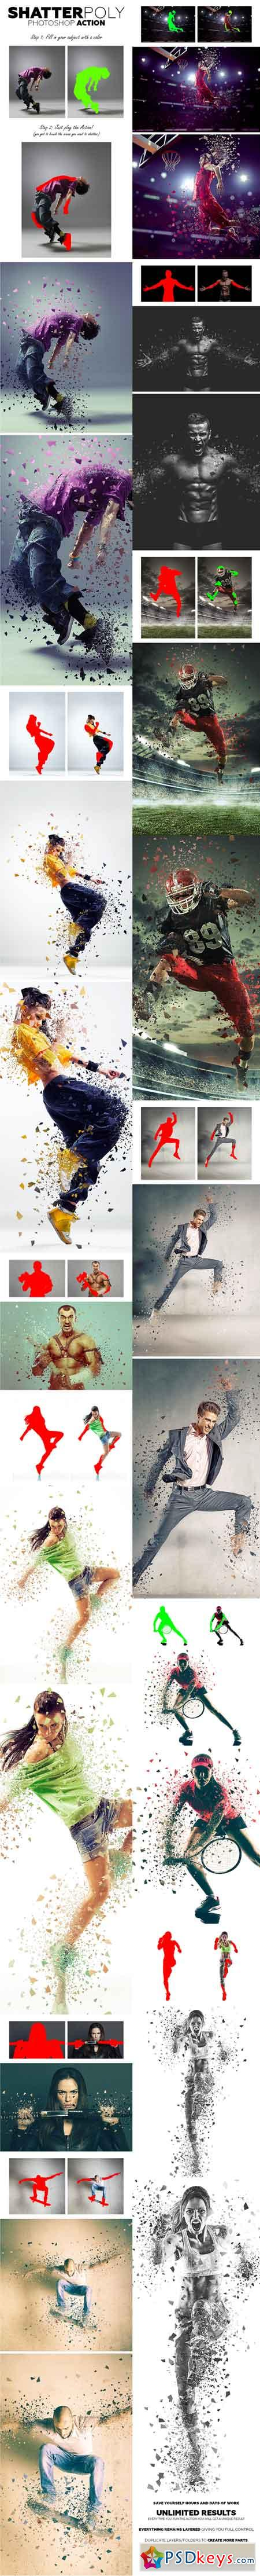 ShatterPoly Photoshop Action 19359412